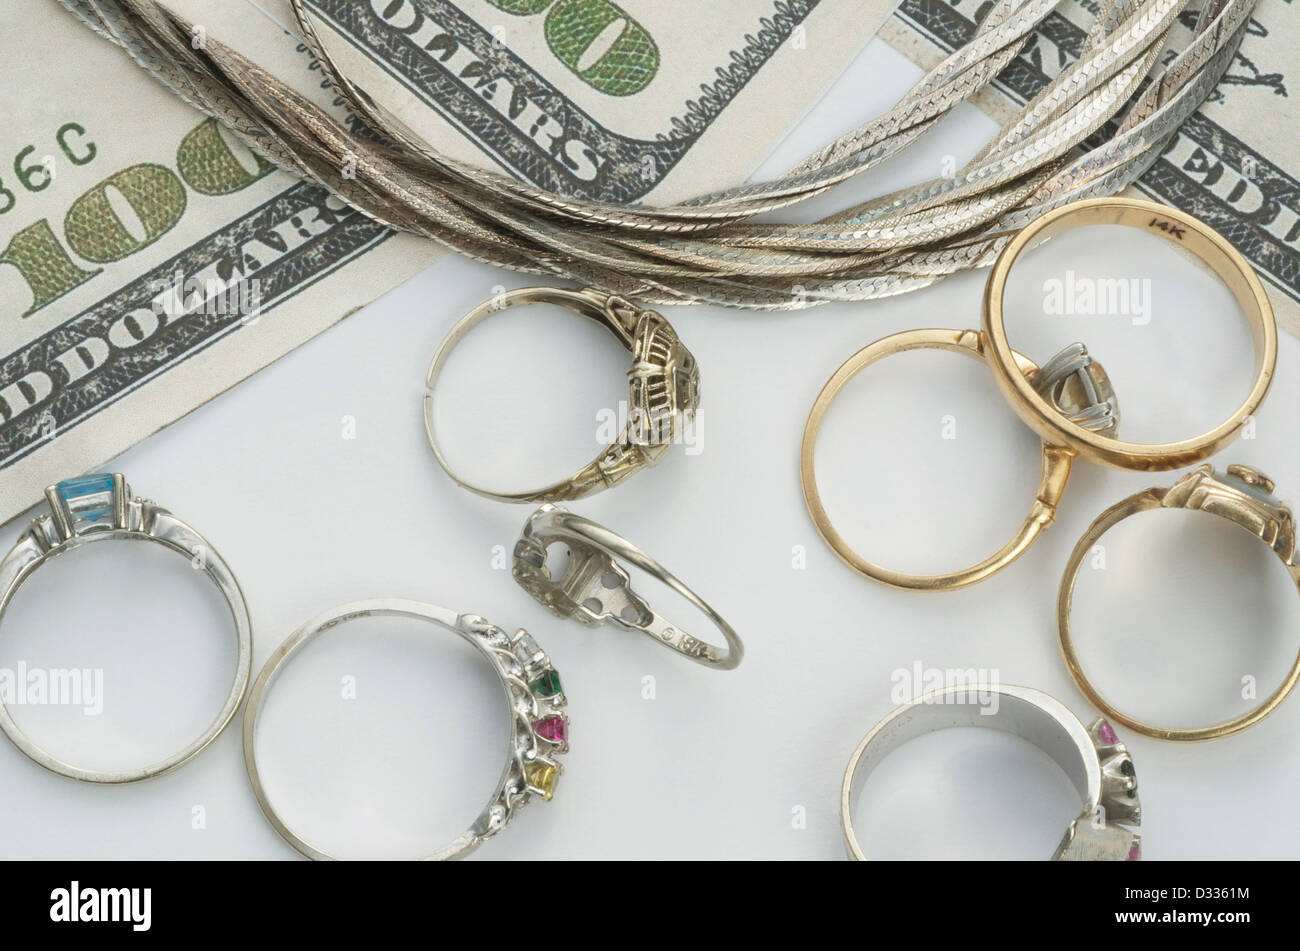 Silver, gold and white gold jewelry that is exchanged for top dollar prices, implied by 100 dollar bills on the - Stock Image